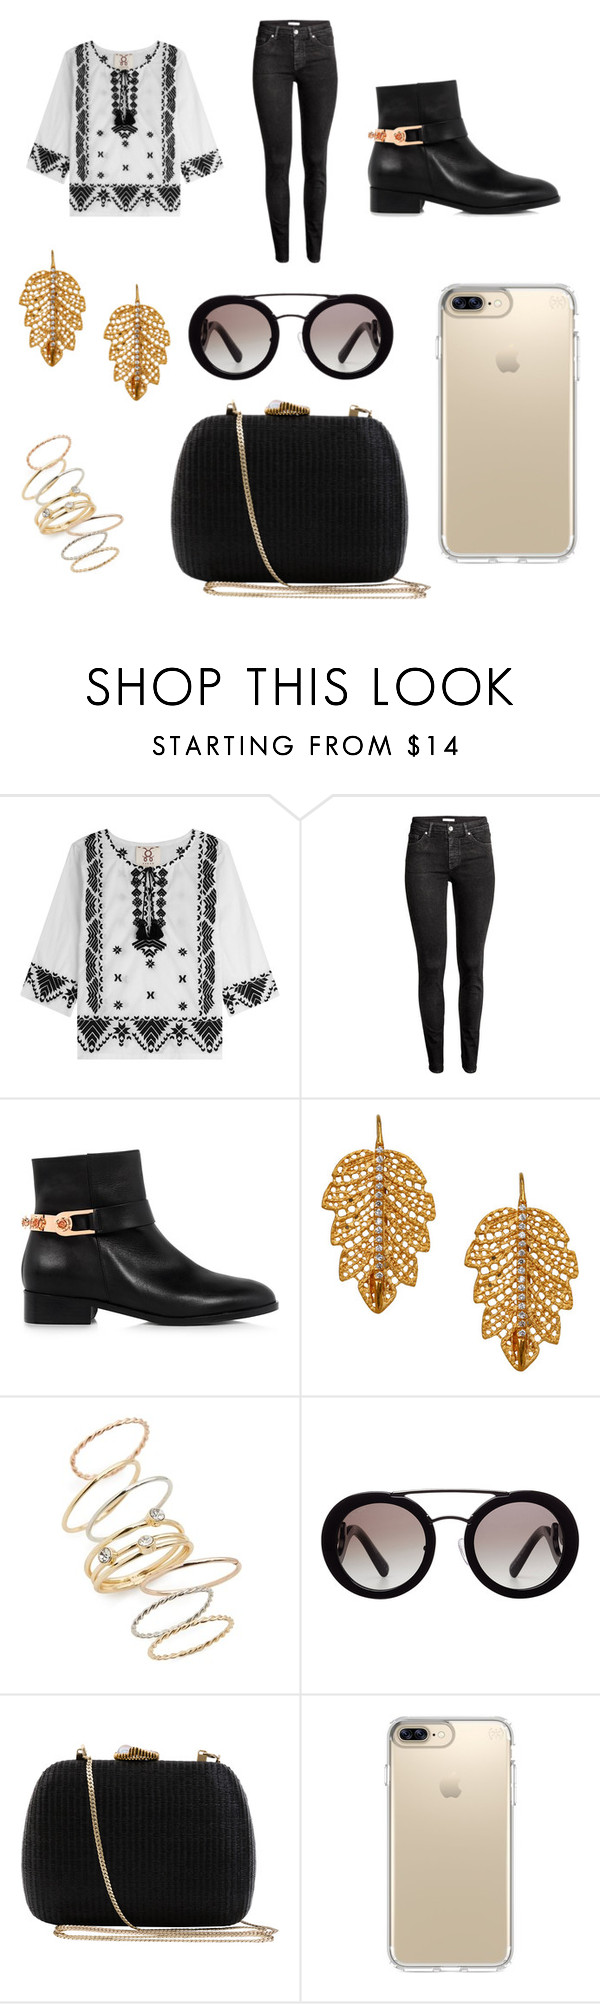 """Christmas party"" by alexandriamcbride on Polyvore featuring Figue, H&M, Eugenia Kim, Marika, BP., Prada, Serpui and Speck"